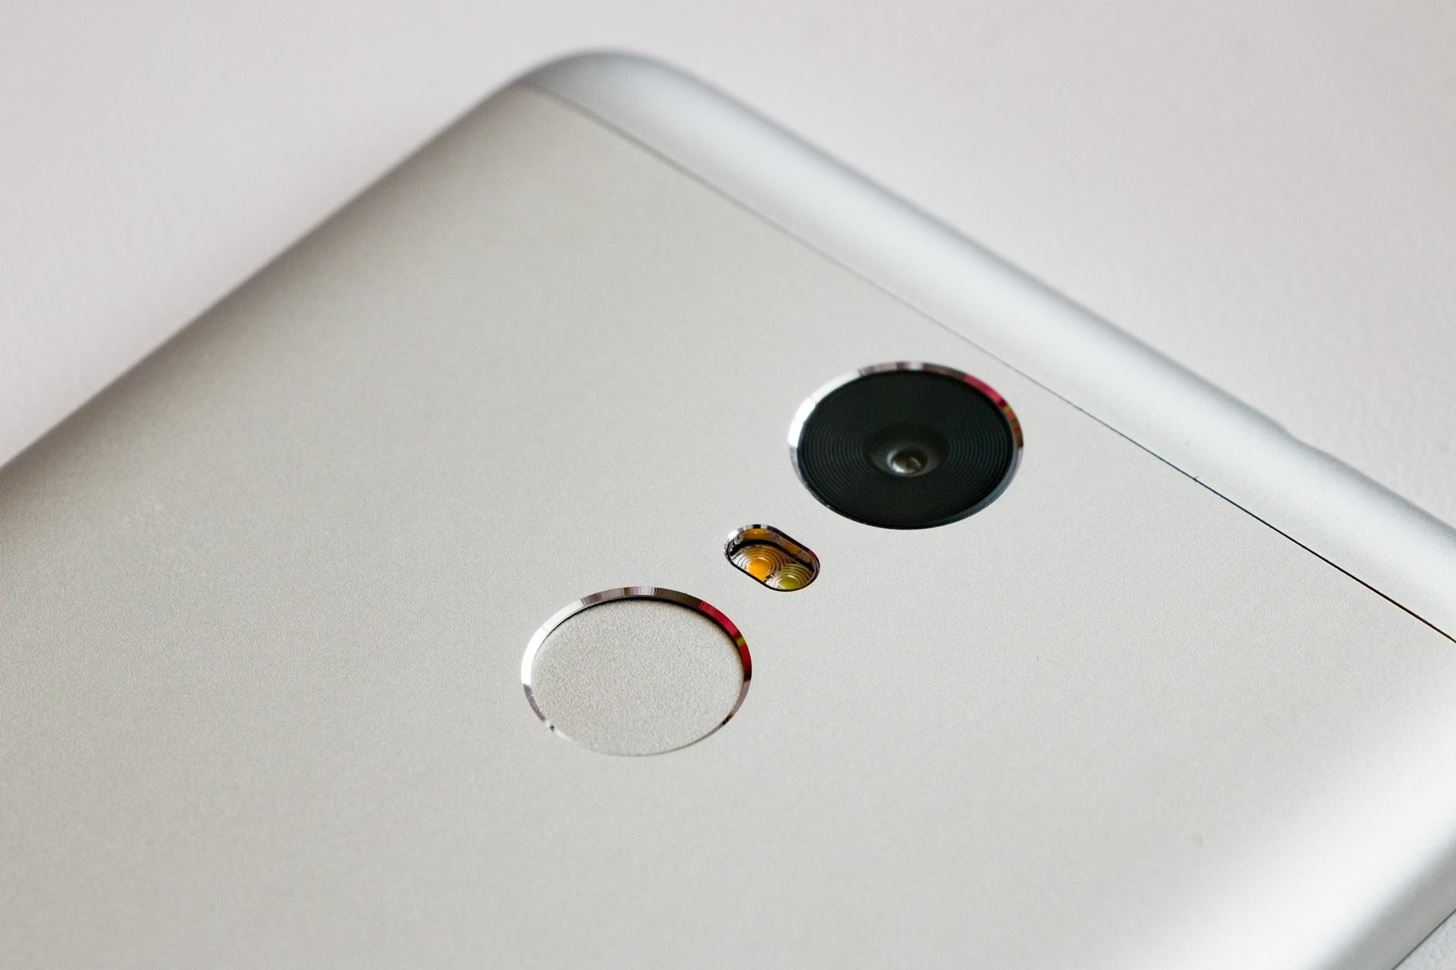 Researchers Find 'MasterPrints' That Can Bypass Your Phone's Fingerprint Scanner